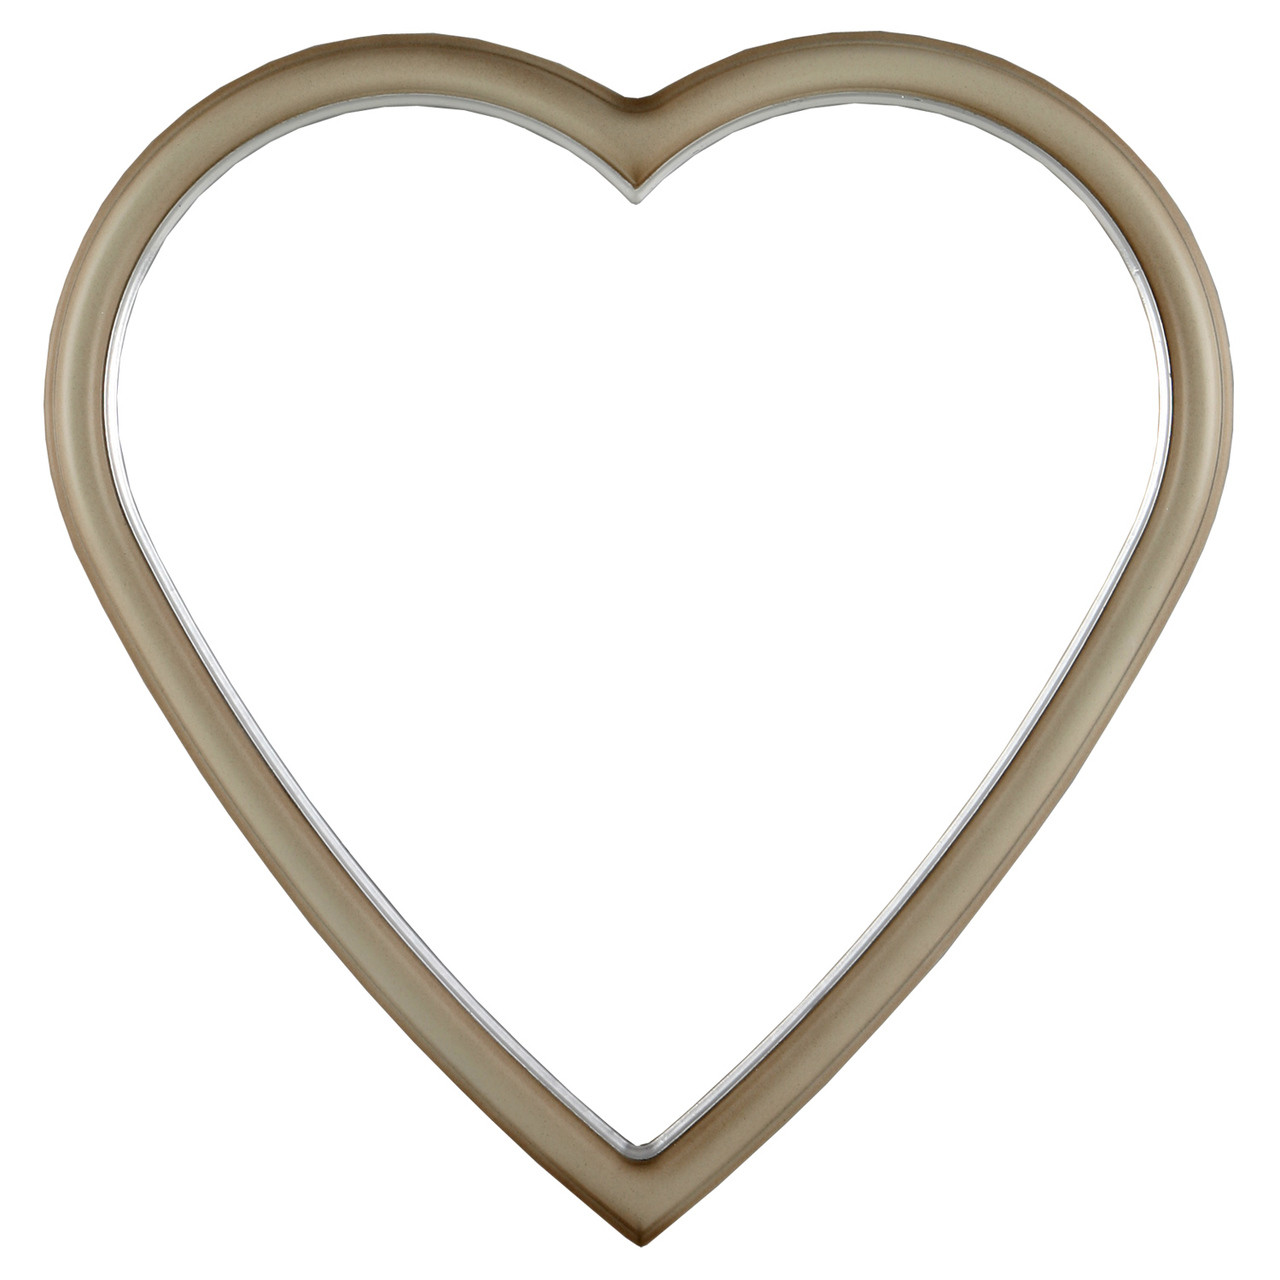 1d130c4a0d8 Heart Picture Frames with Gold Leaf on Lips| Simple Antique Wooden ...